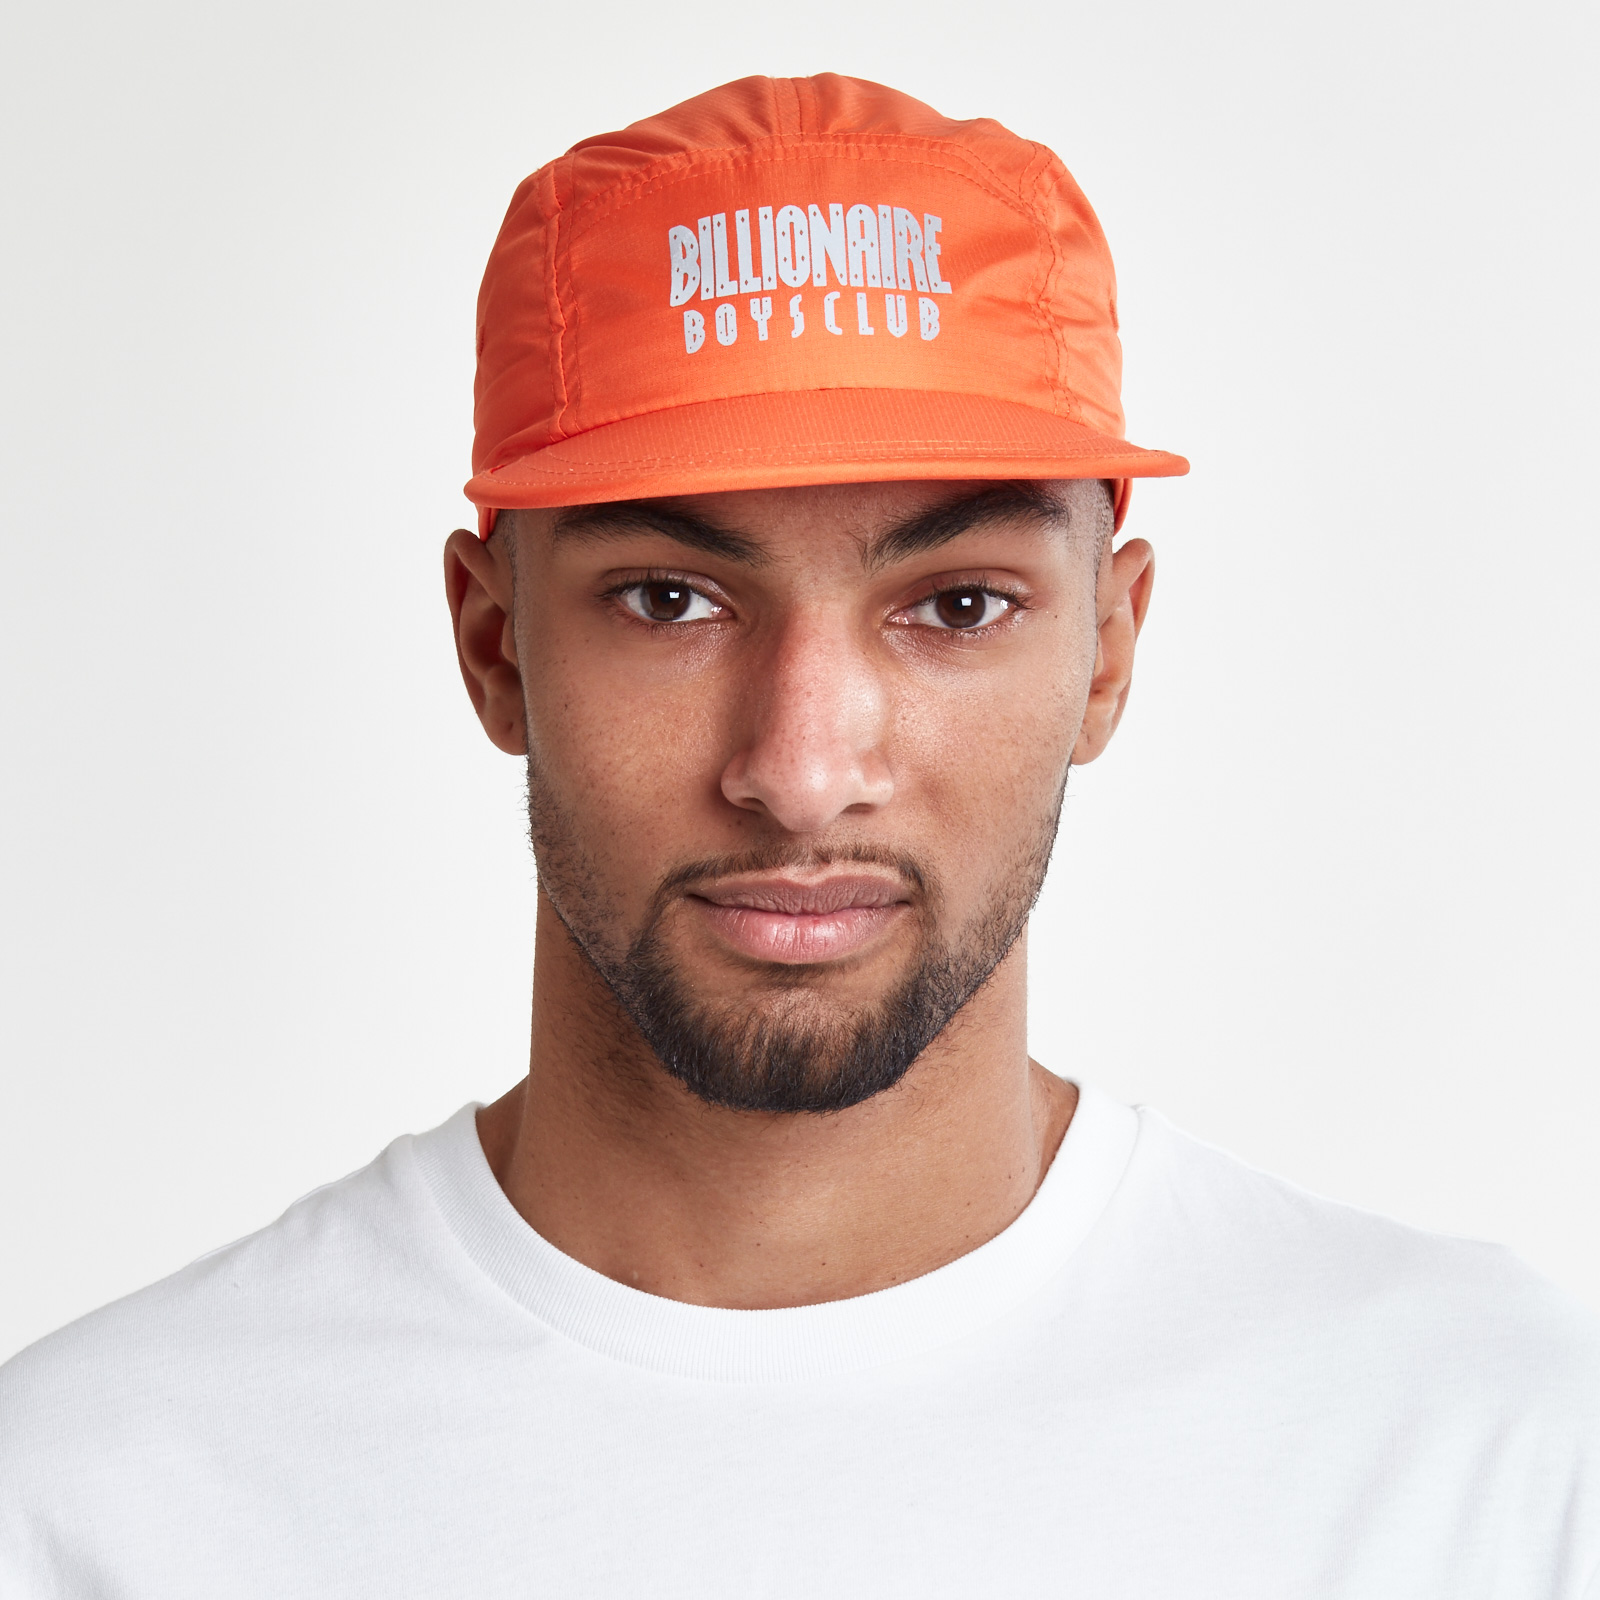 Billionaire Boys Club 5 Panel Straight Logo Print Cap - B17363 ... 87c7c4ed3e35